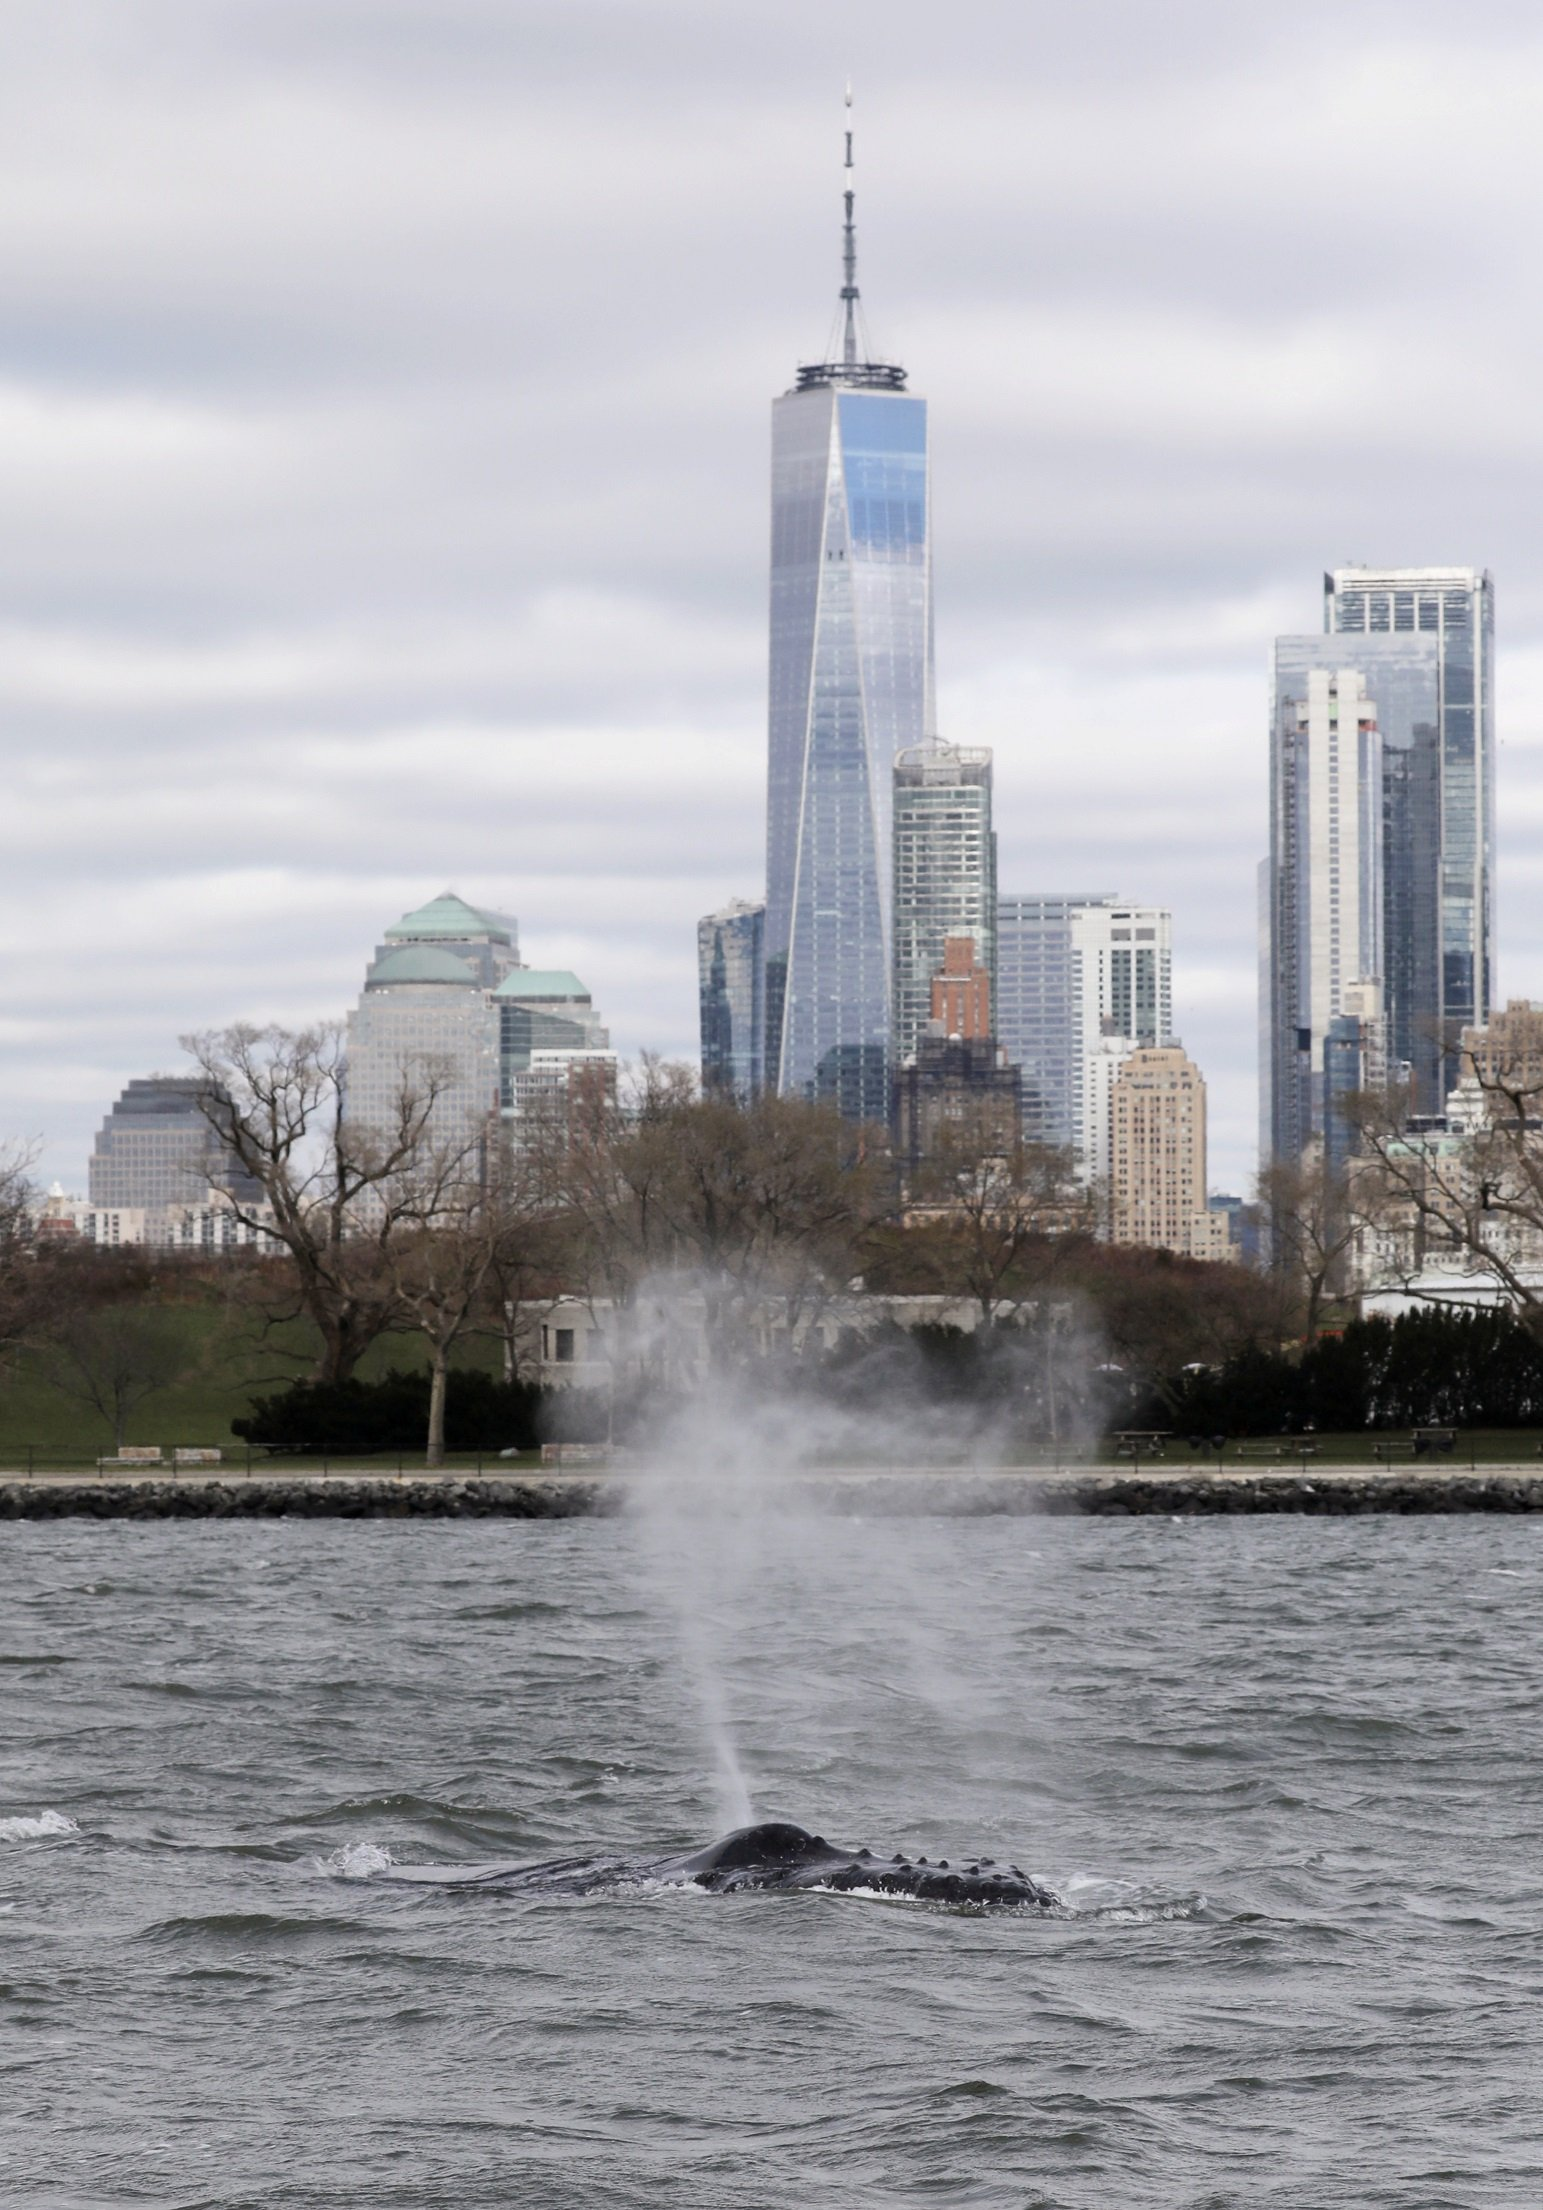 A humpback whale surfaces near One World Trade Center in this photo taken from a boat on New York Harbor in New York City, U.S., December 8, 2020